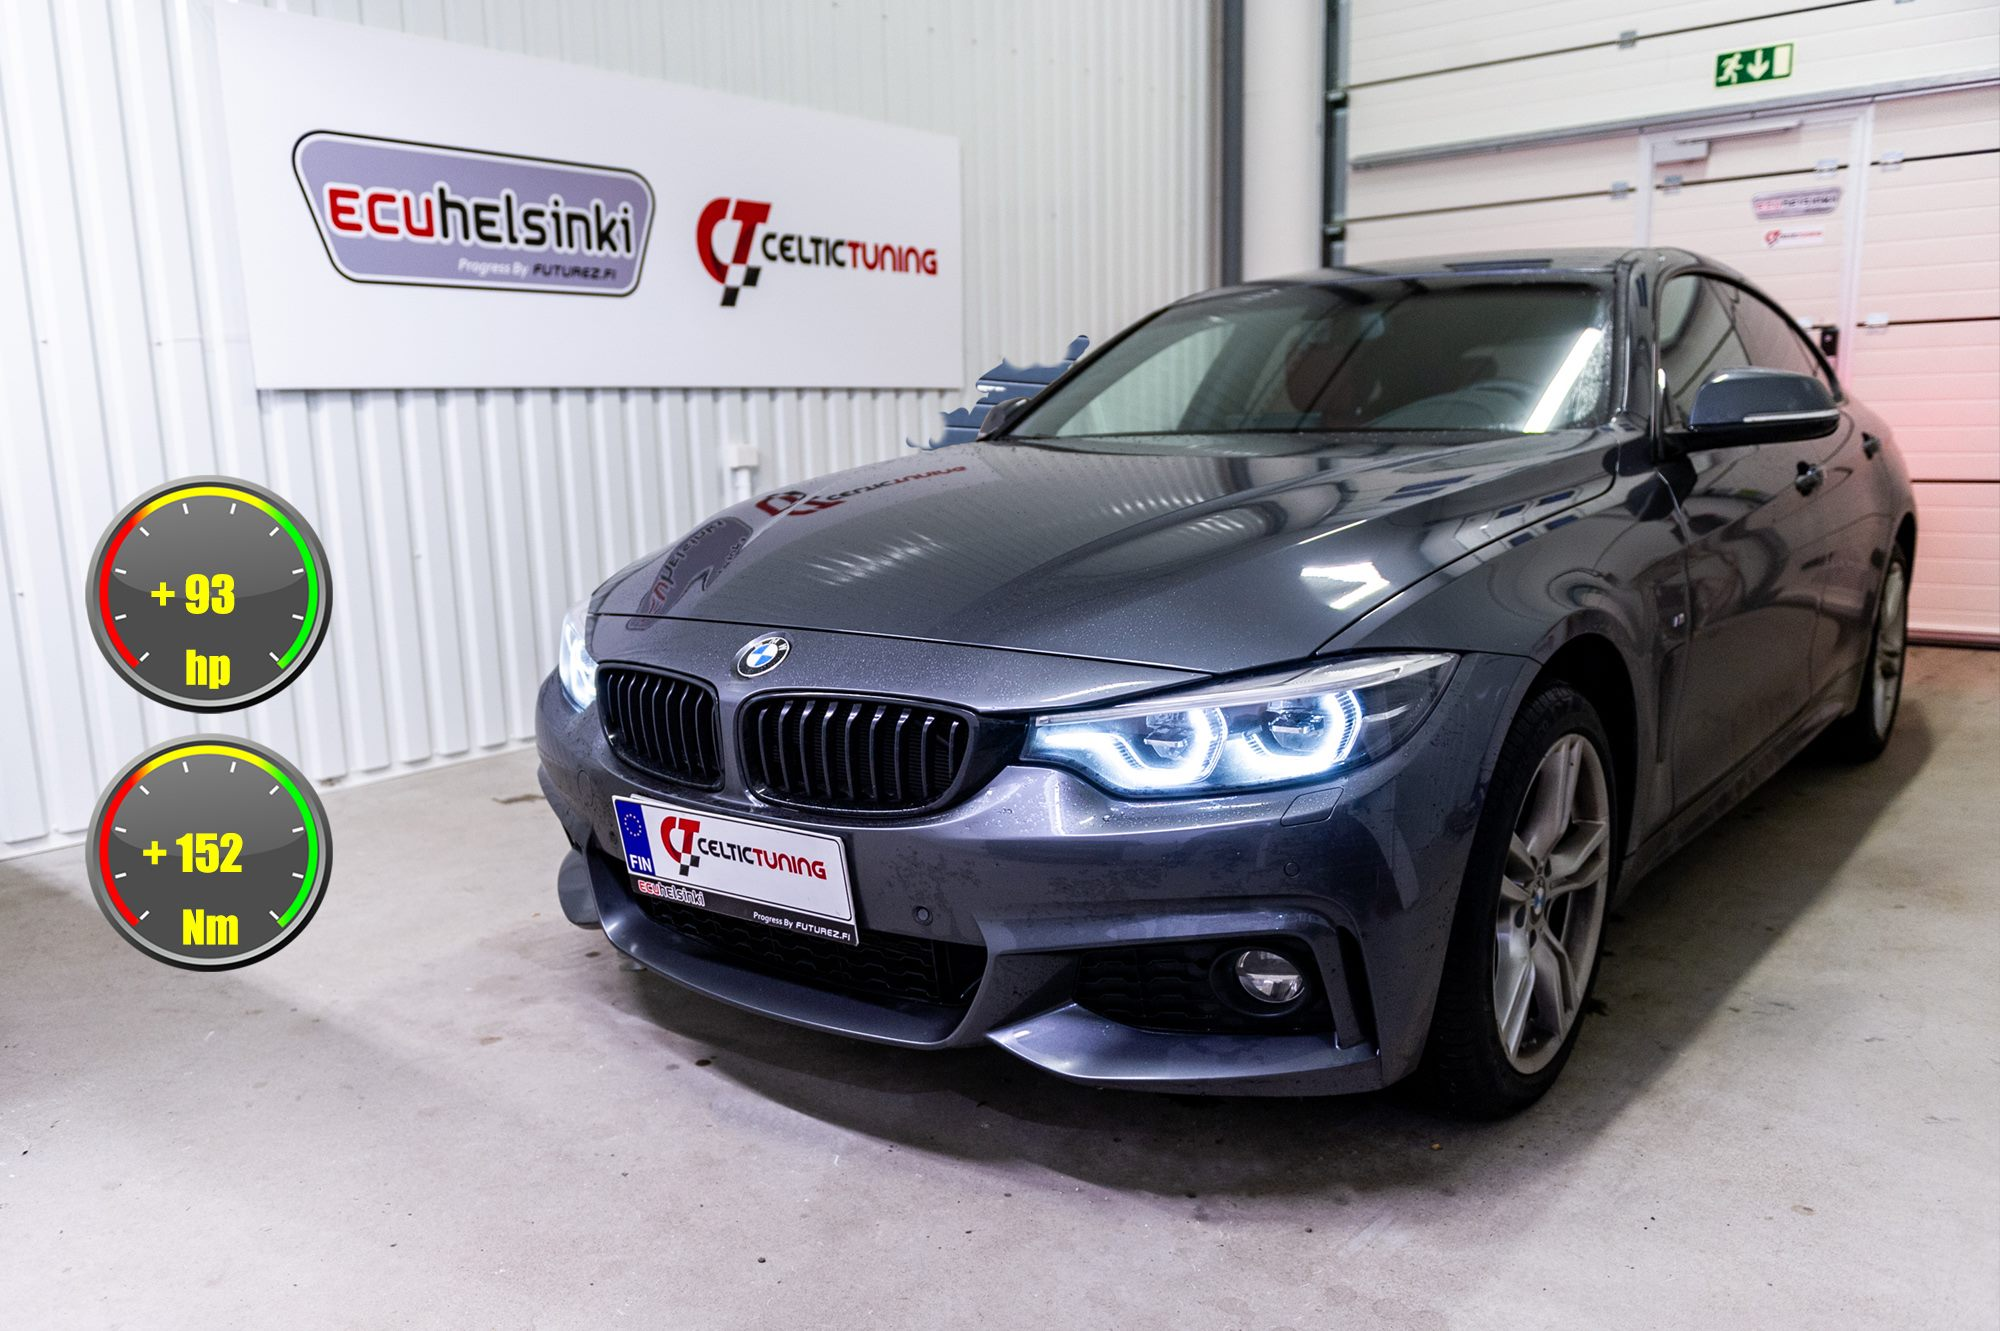 BMW 420i celtic tuning lastutus